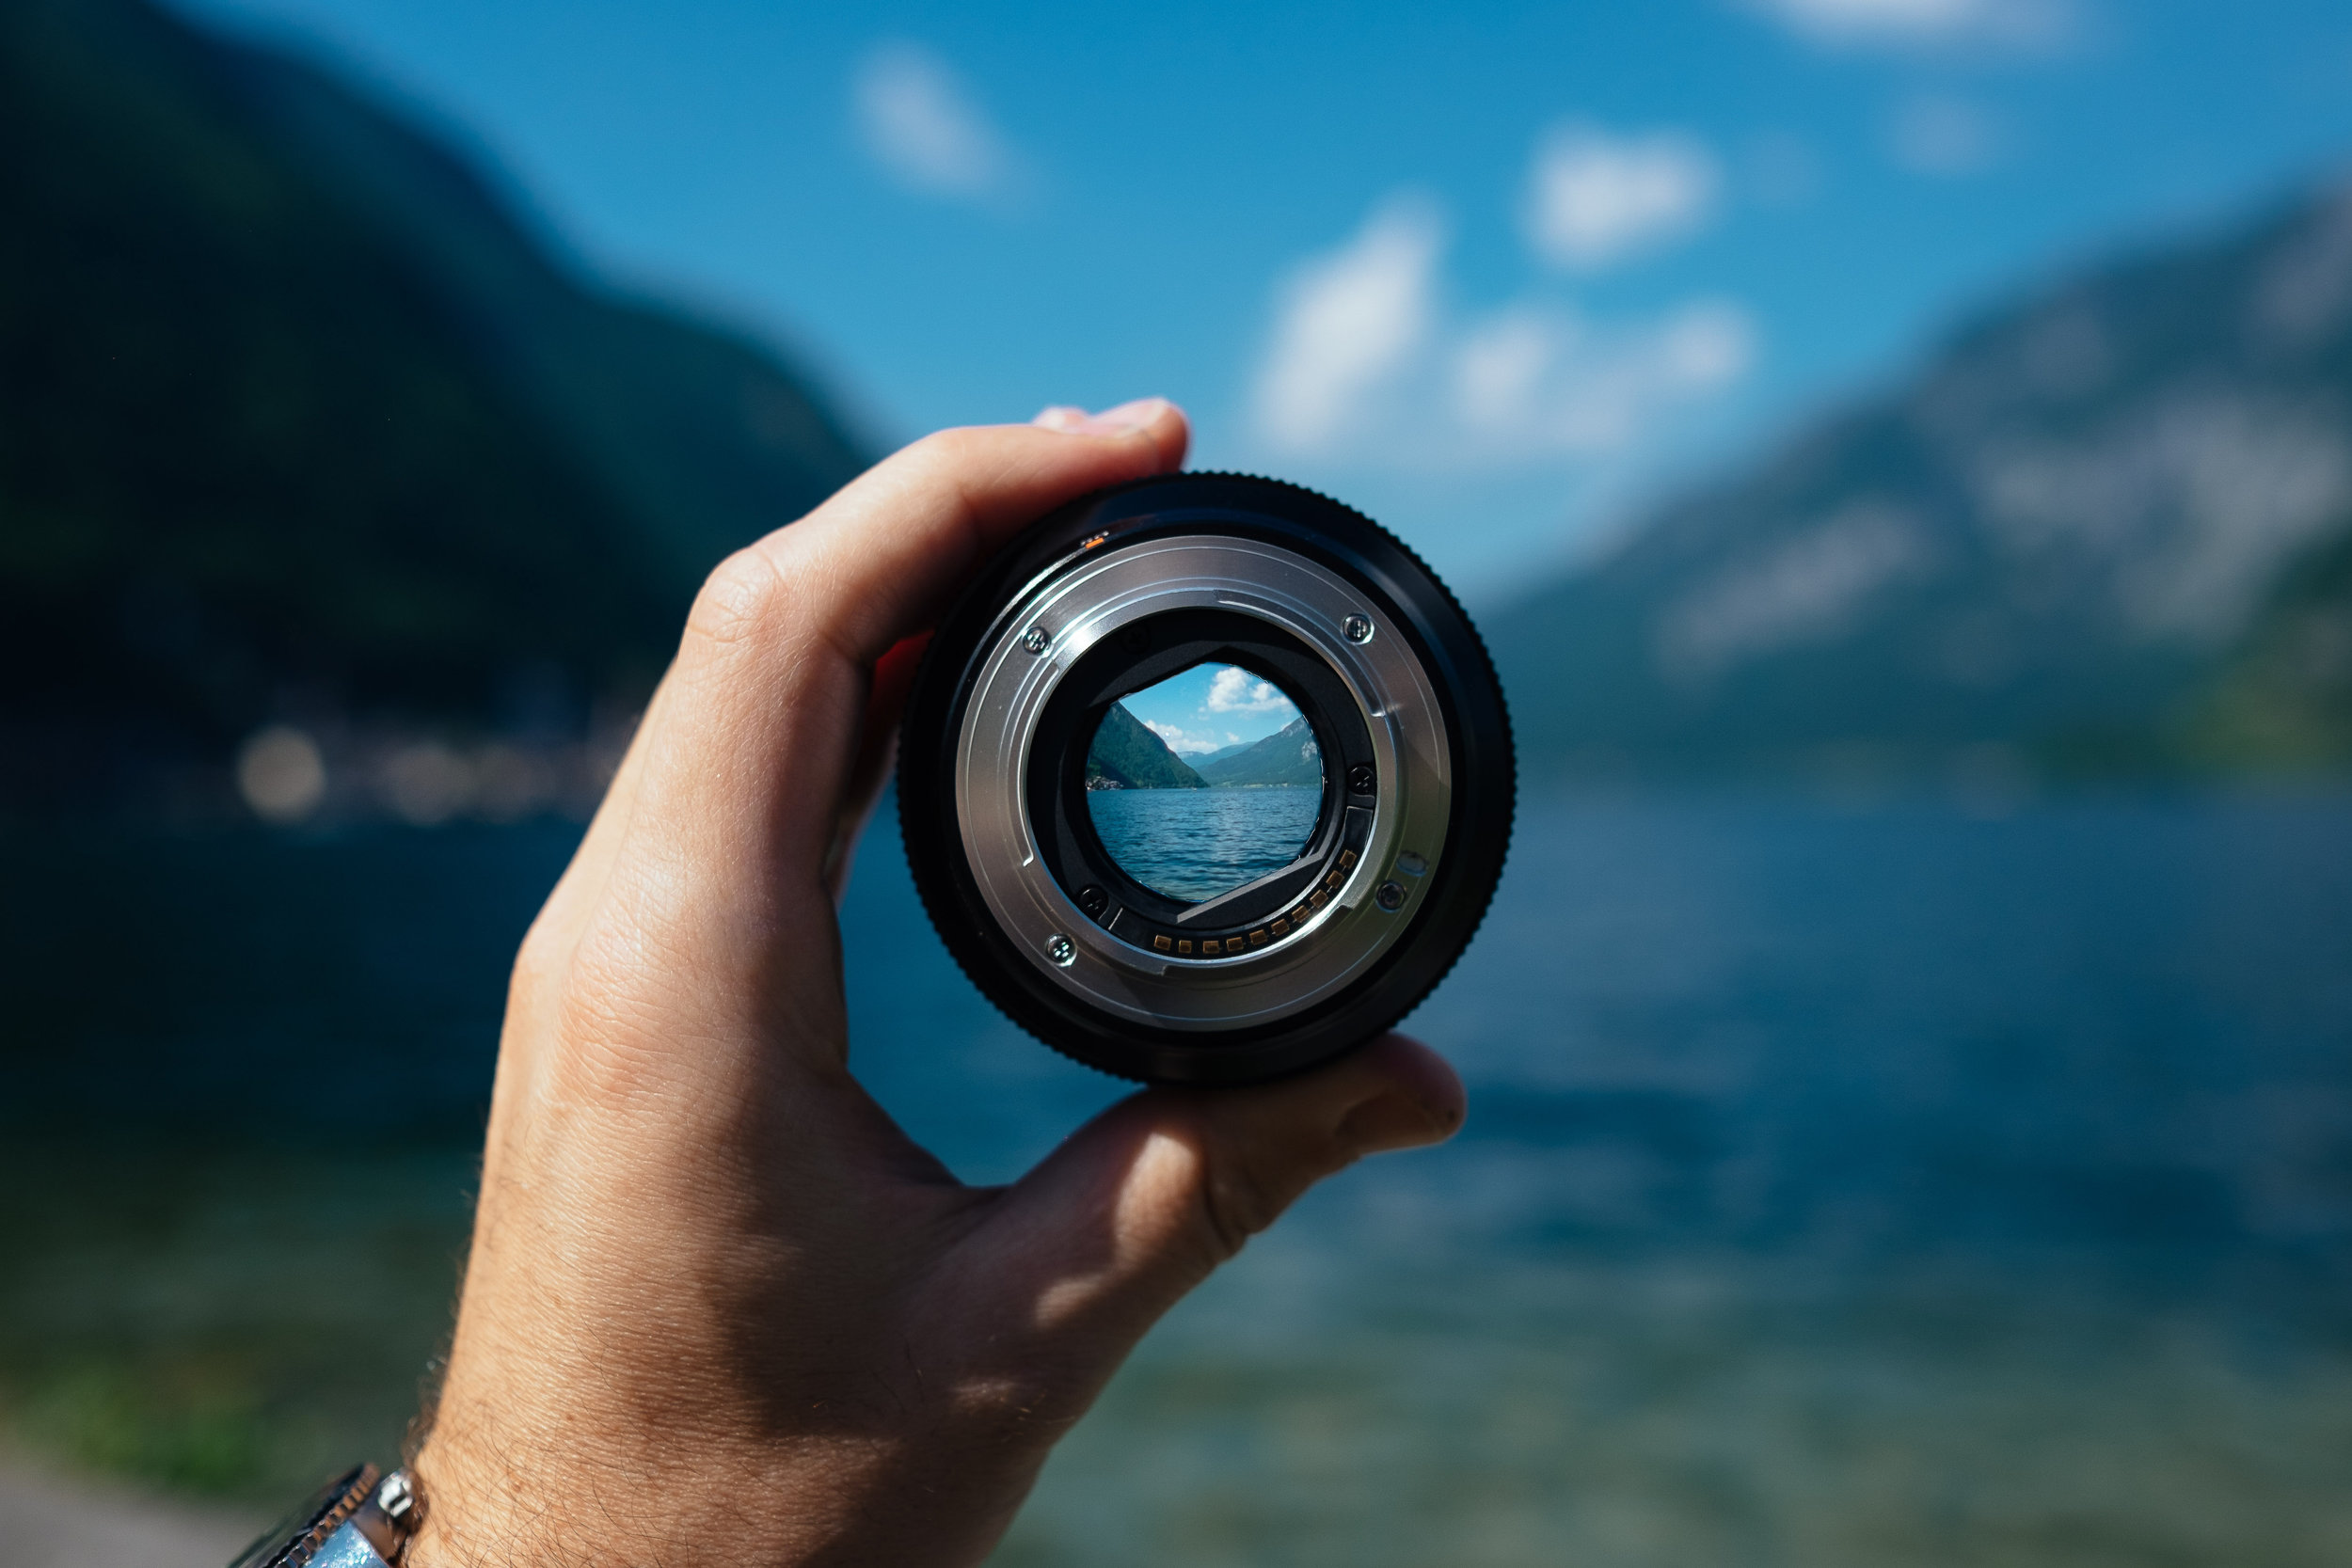 Tell us about your vision -